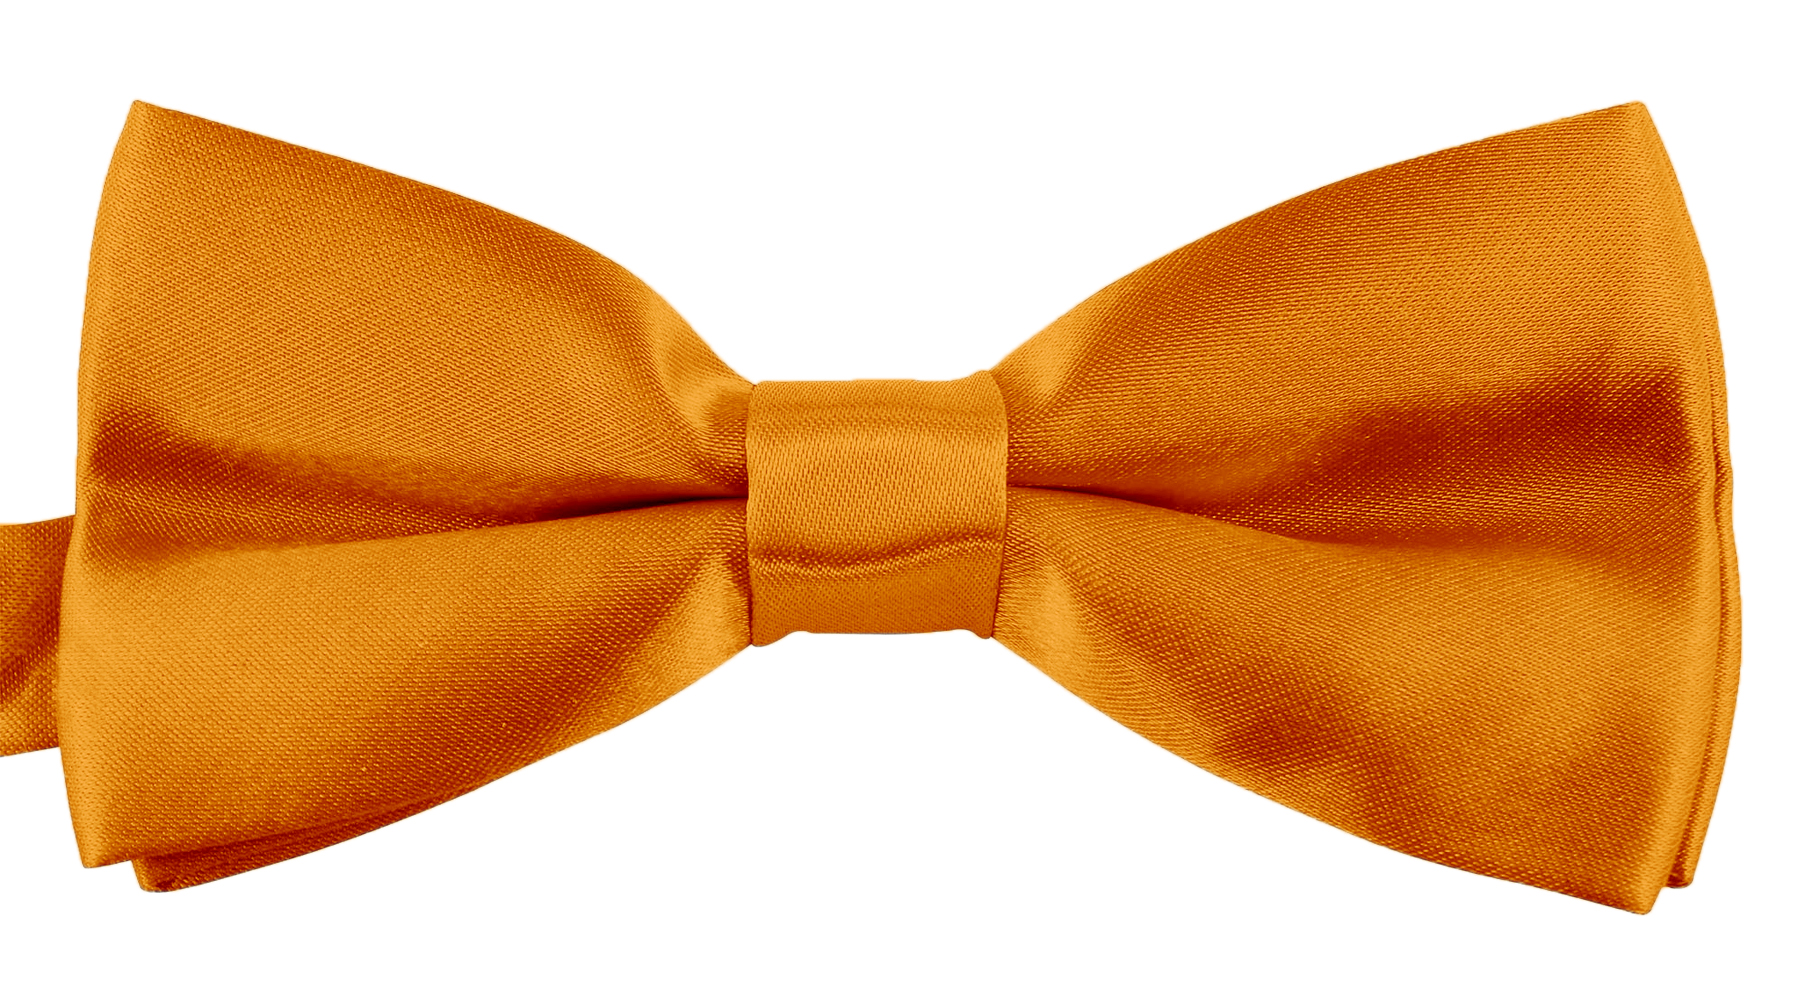 Classic Bow Ties For Men Adjustable Banded Pre-Tied Formal Wedding Tuxedo Gift Box - Golden Yellow